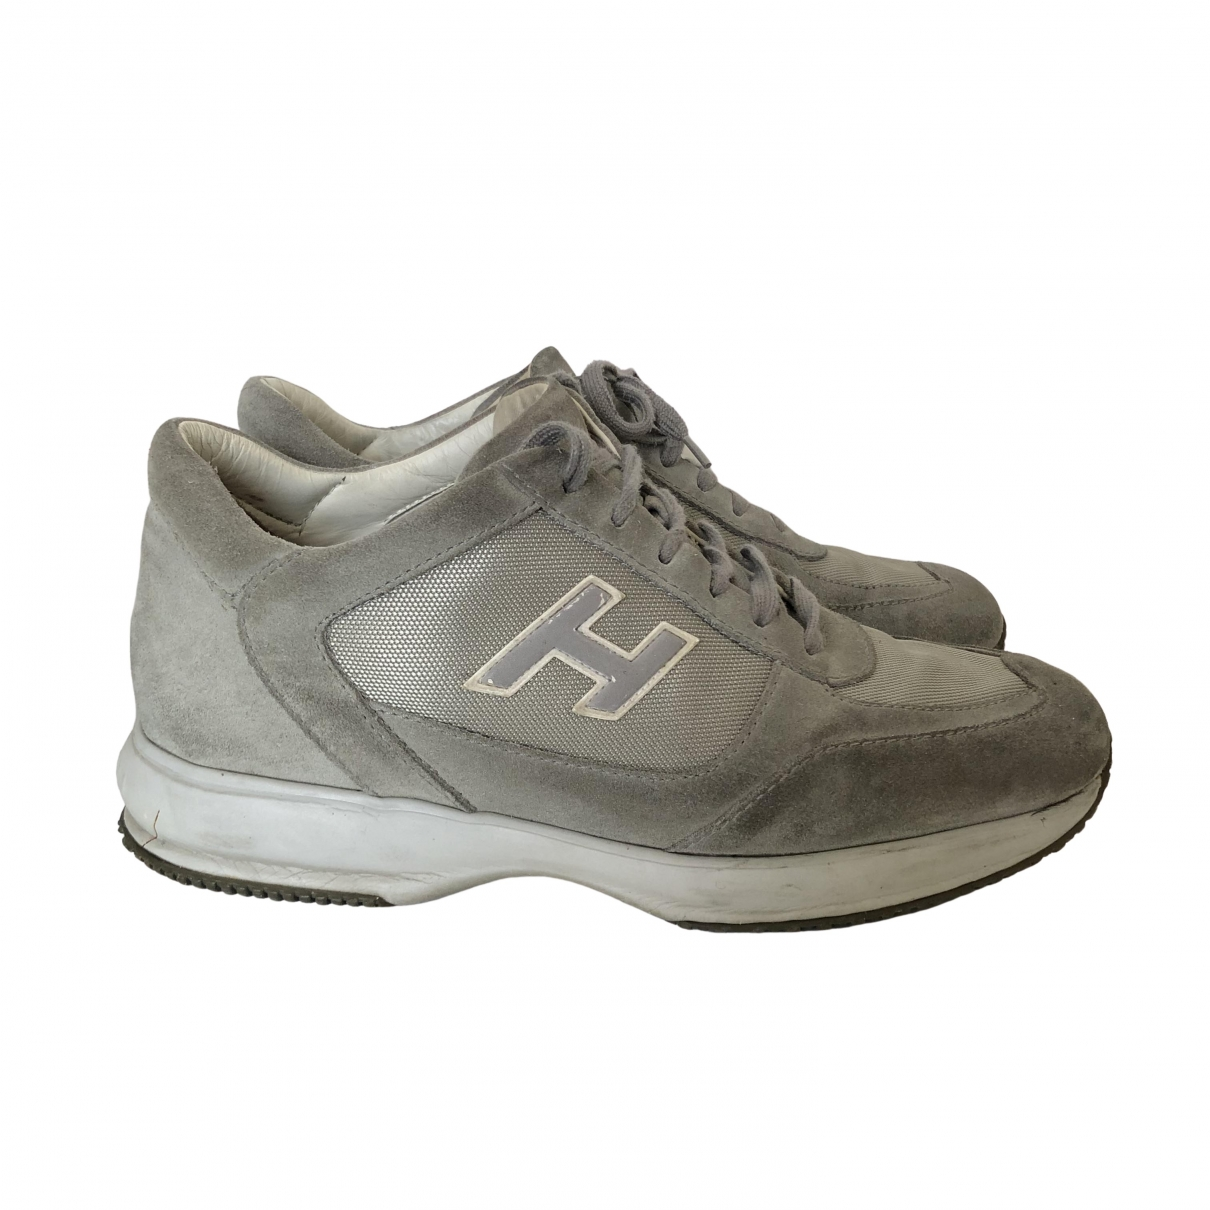 Hogan \N Sneakers in  Grau Leder